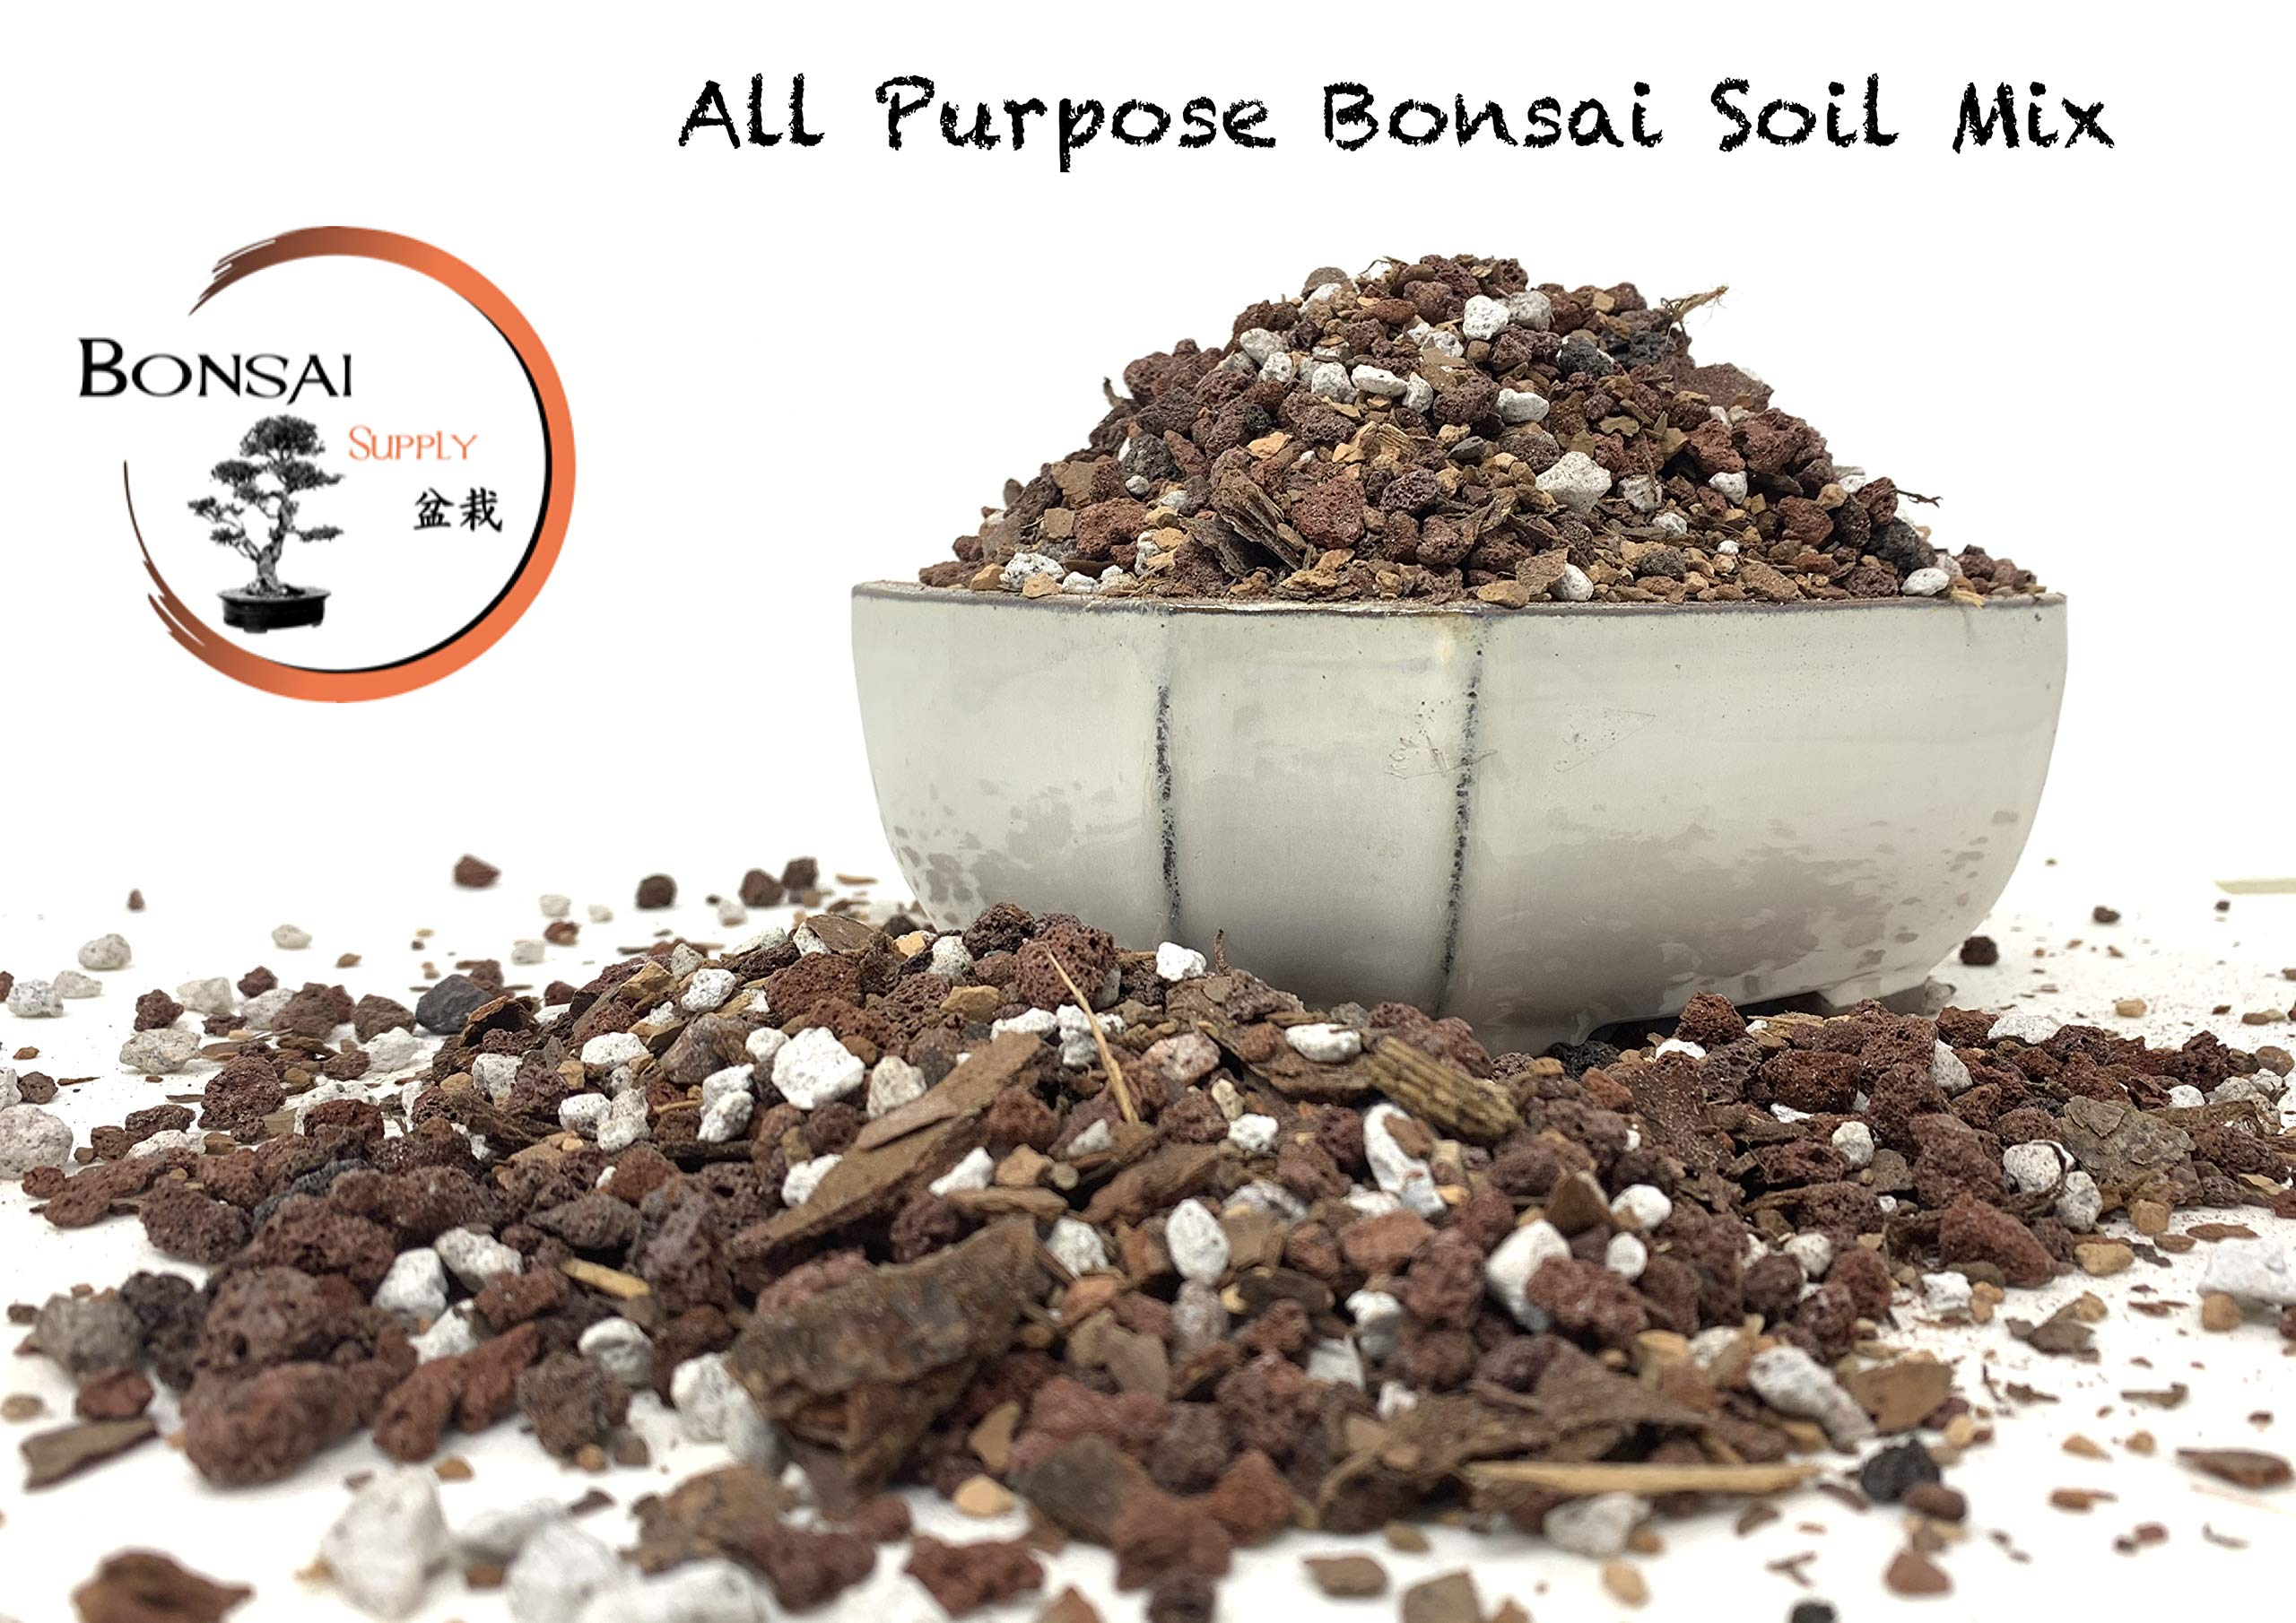 Bonsai Tree Soil by The Bonsai Supply, Super Sack! All Purpose Ready to Use Bonsai Potting Blend (5 Gallon = 20 Dry Quarts)- Pumice, Lava, Calcined Clay and Pine Bark Fines by The Bonsai Supply